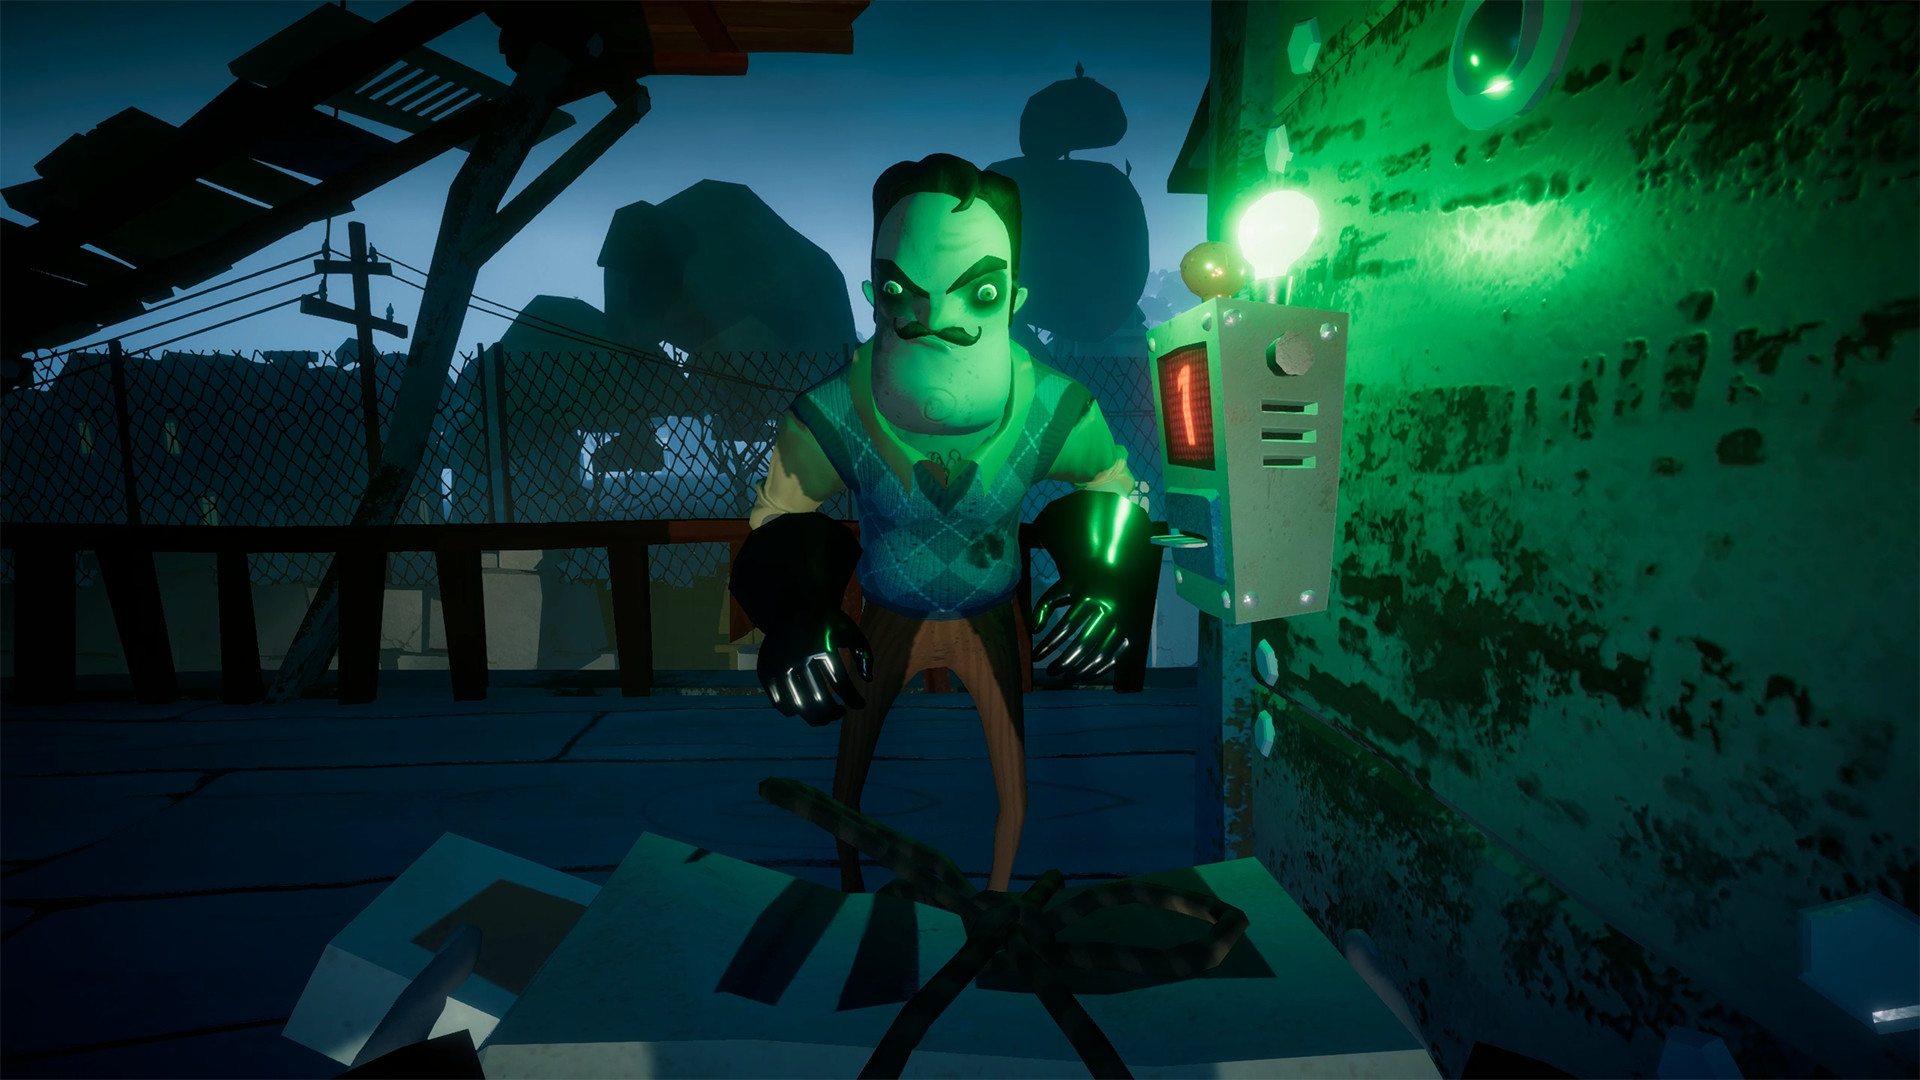 Secret Neighbor is coming to PS4, Switch, and iOS - VG247